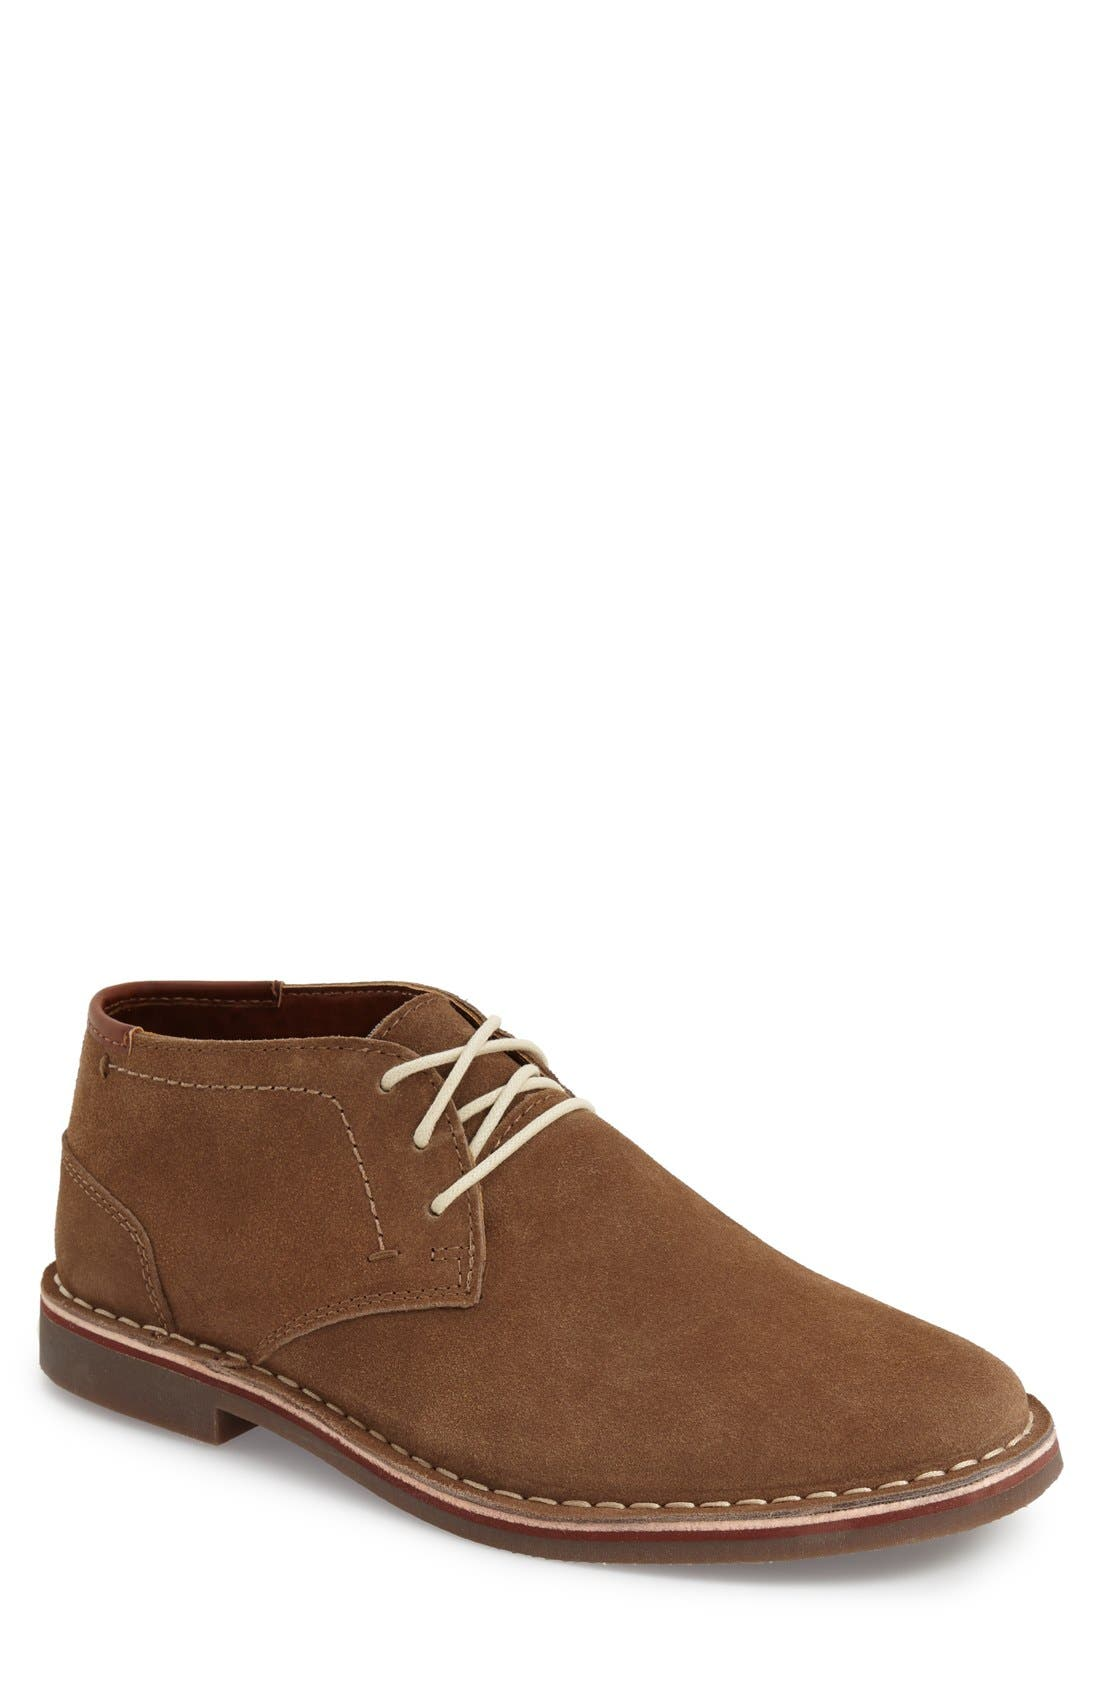 'Desert Sun' Chukka Boot,                         Main,                         color, Taupe Suede